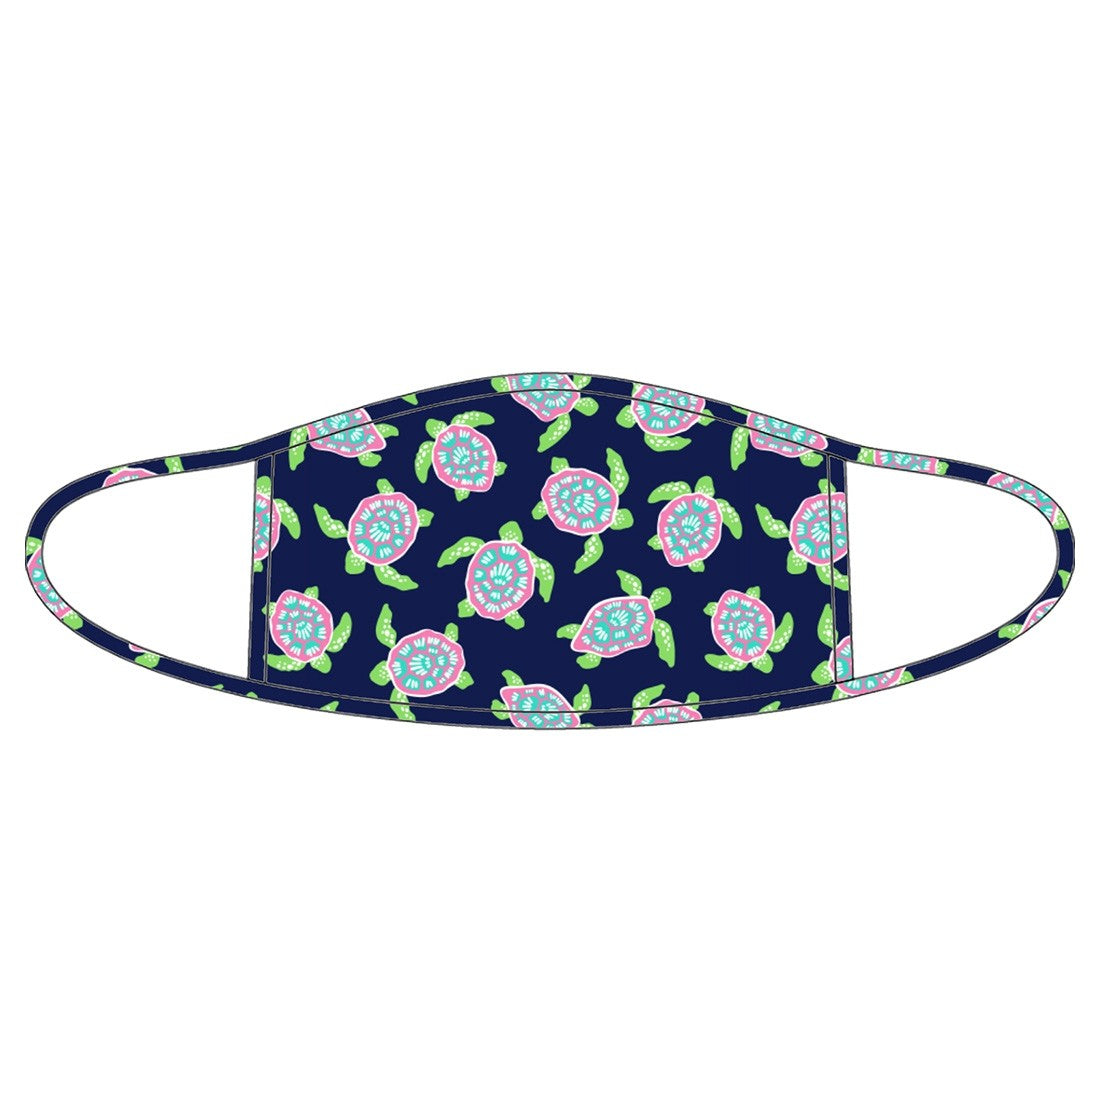 Turtle Bay Adult Face Mask